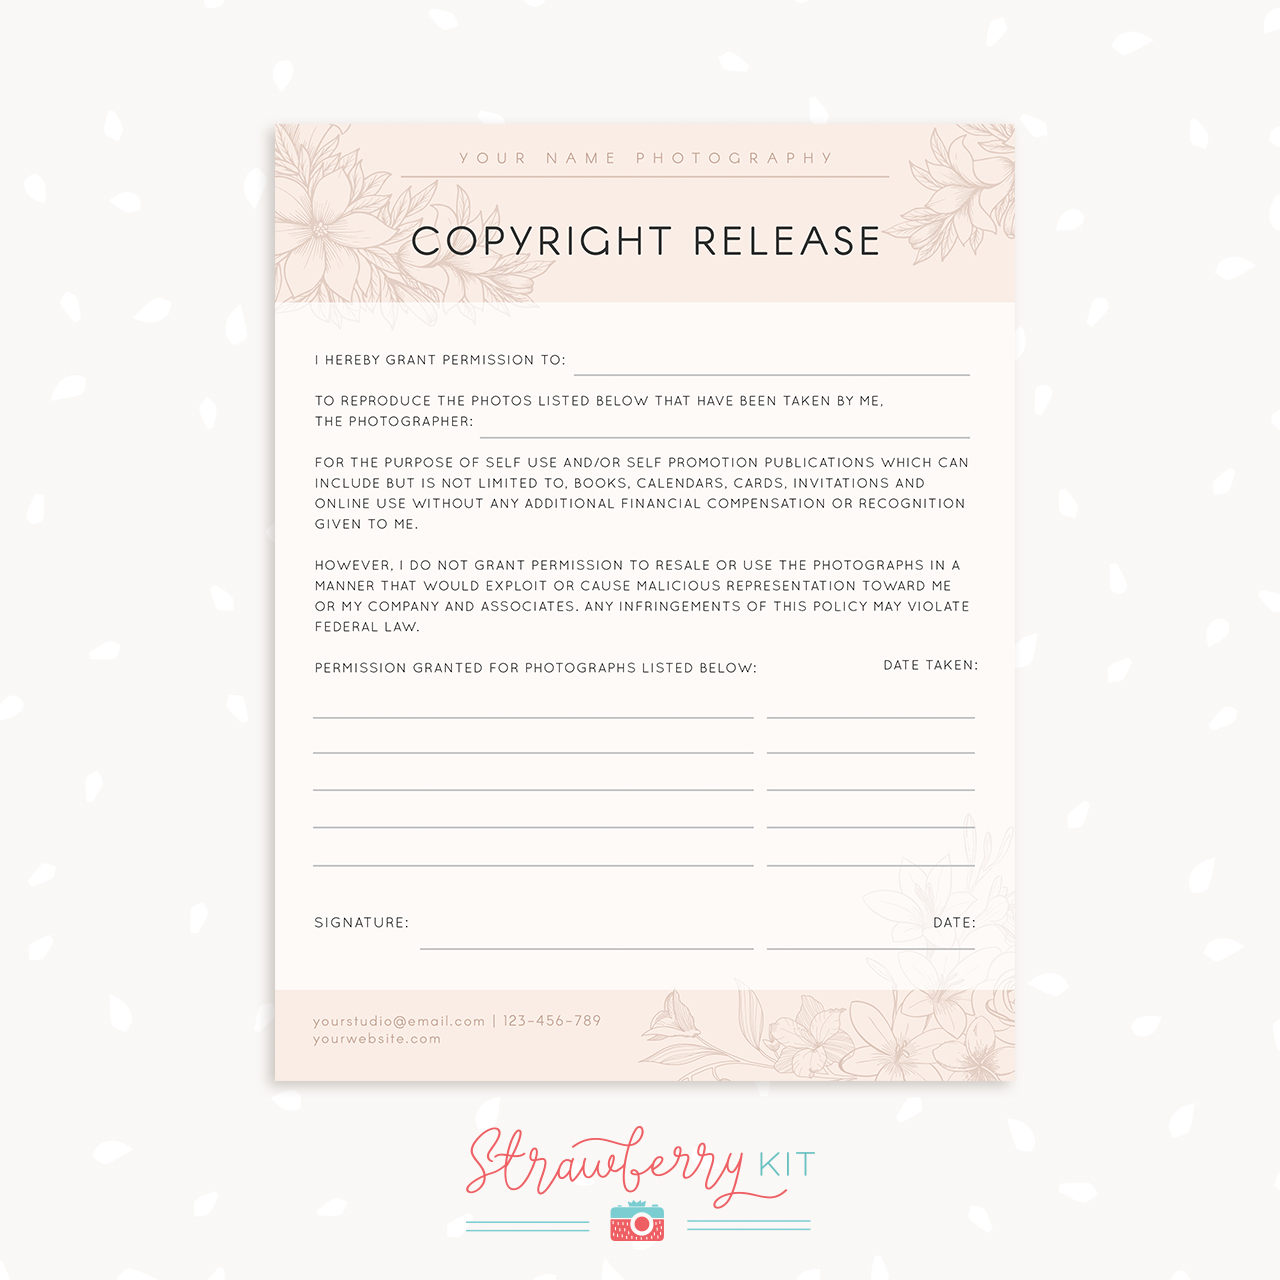 Copyright Release Form Template Strawberry Kit